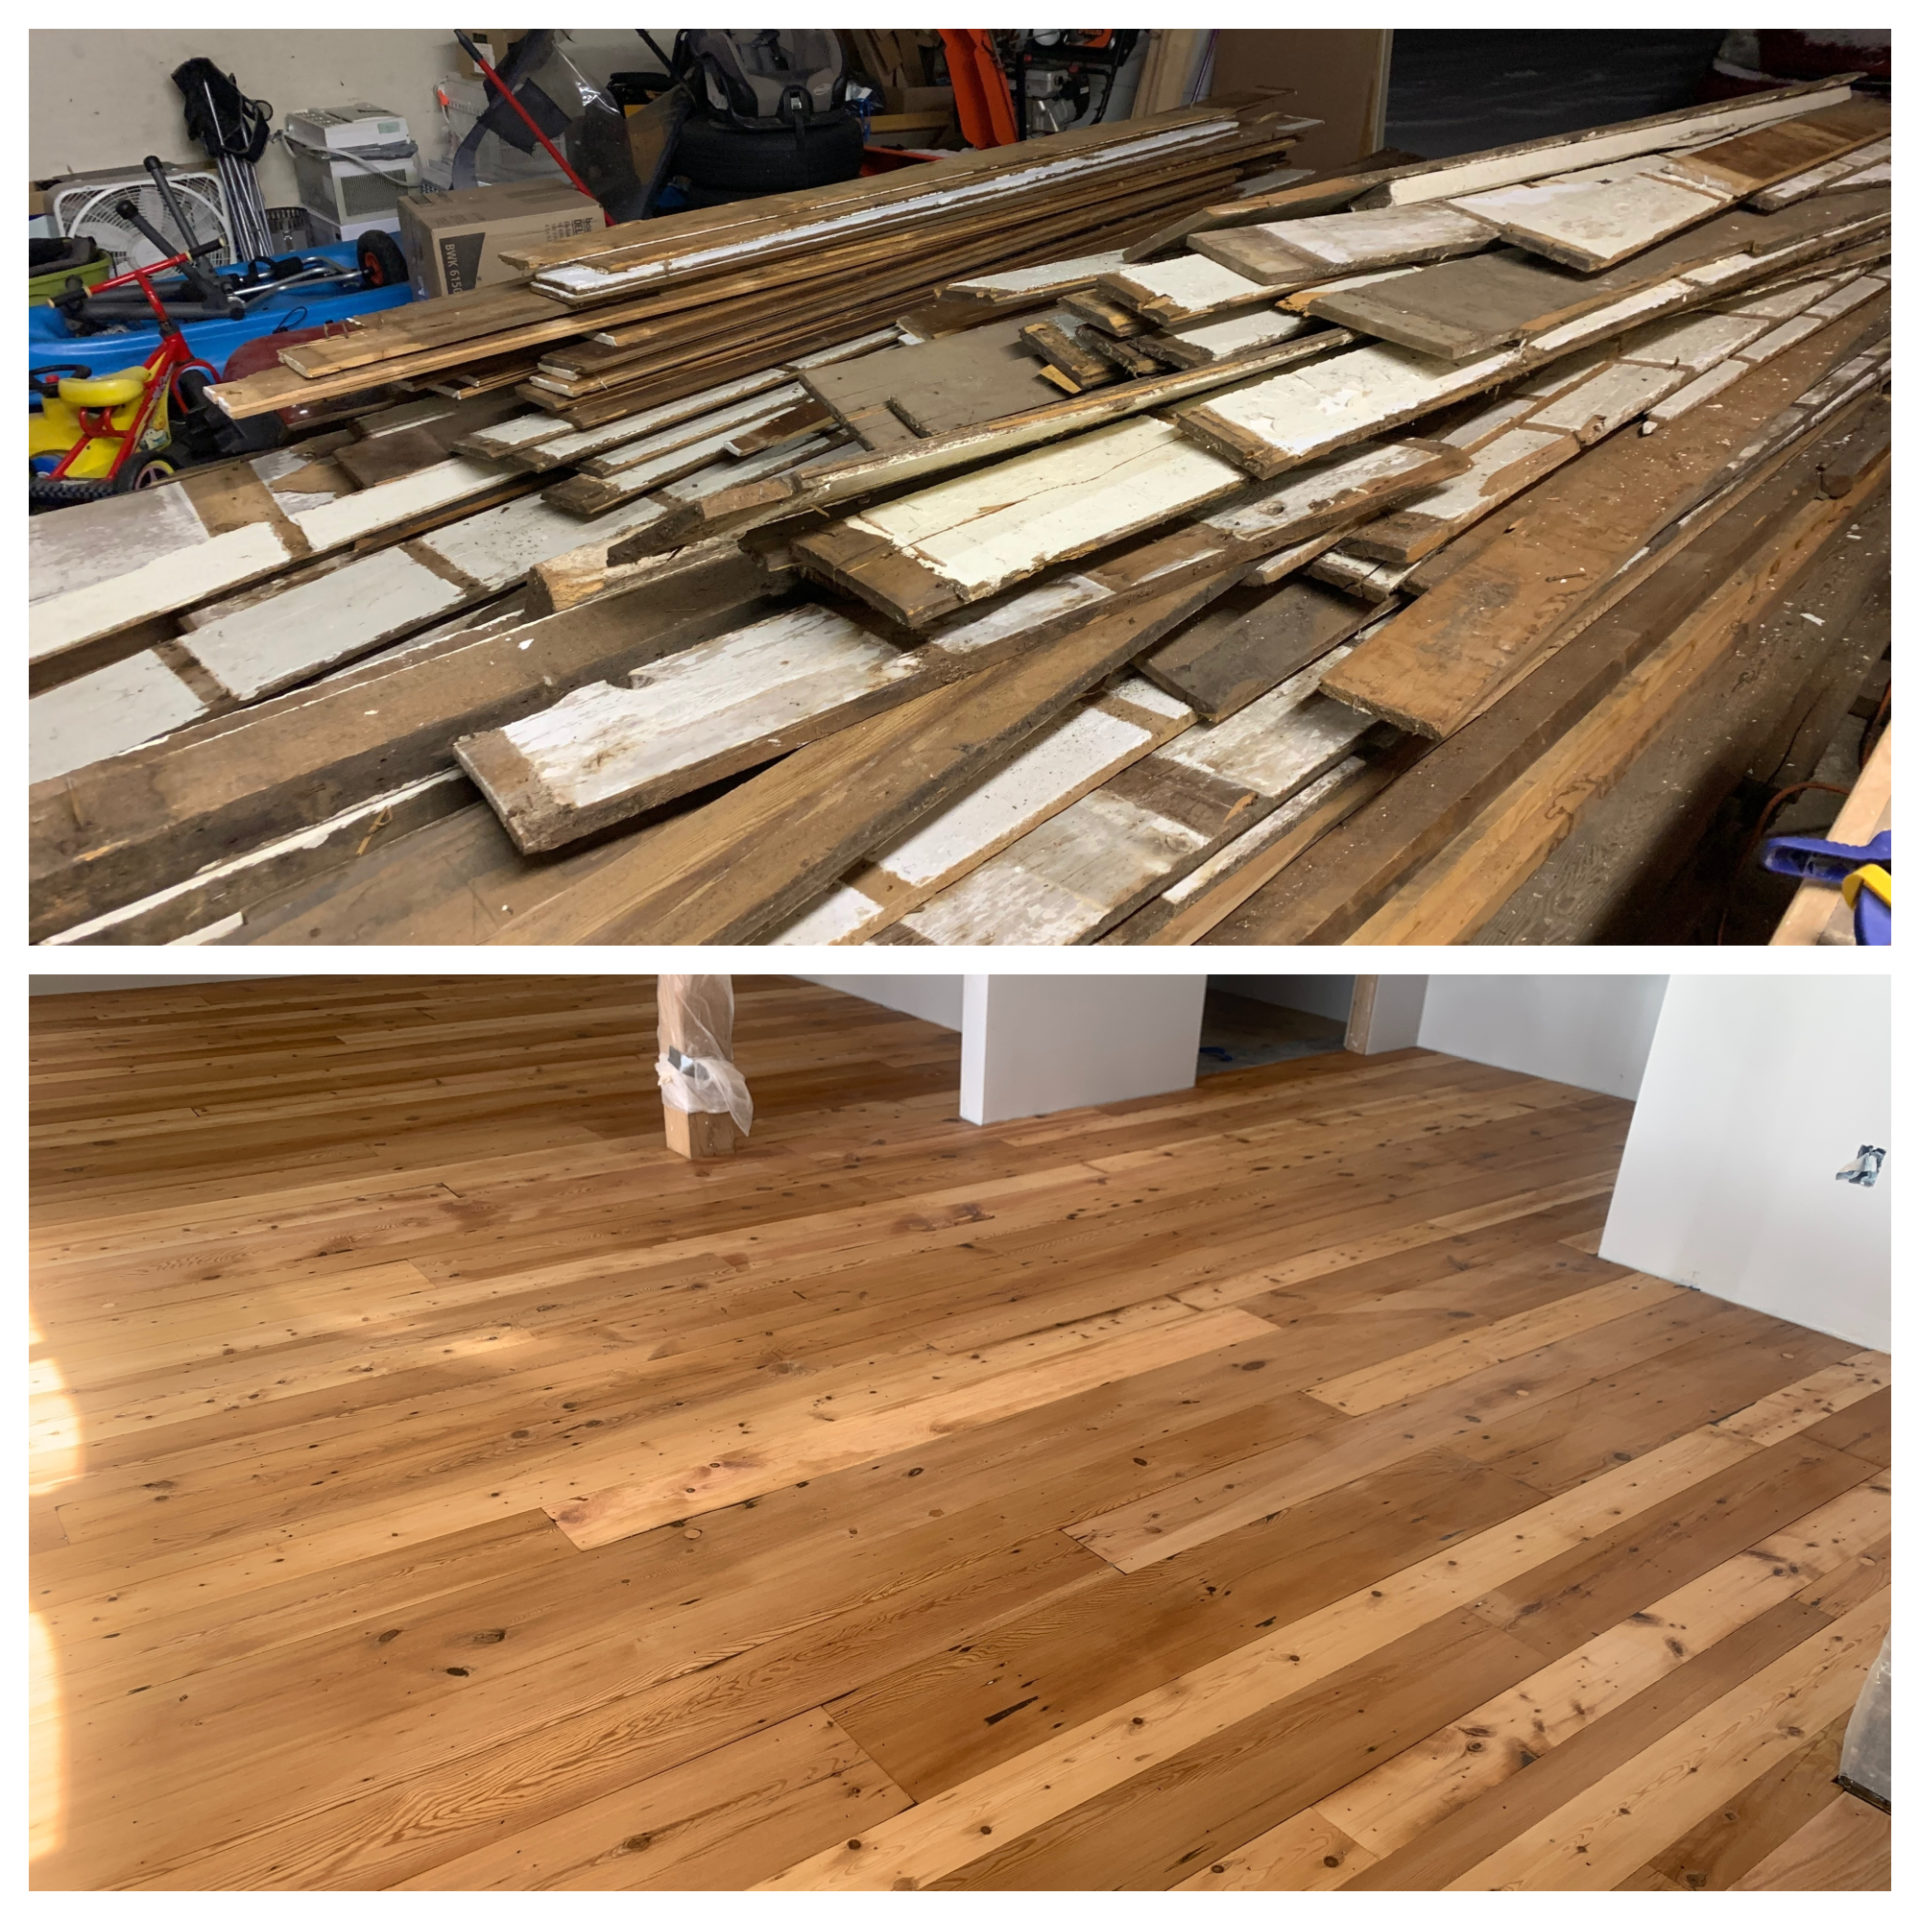 The barn's original floorboards, before and after. (Simón Rios/WBUR)